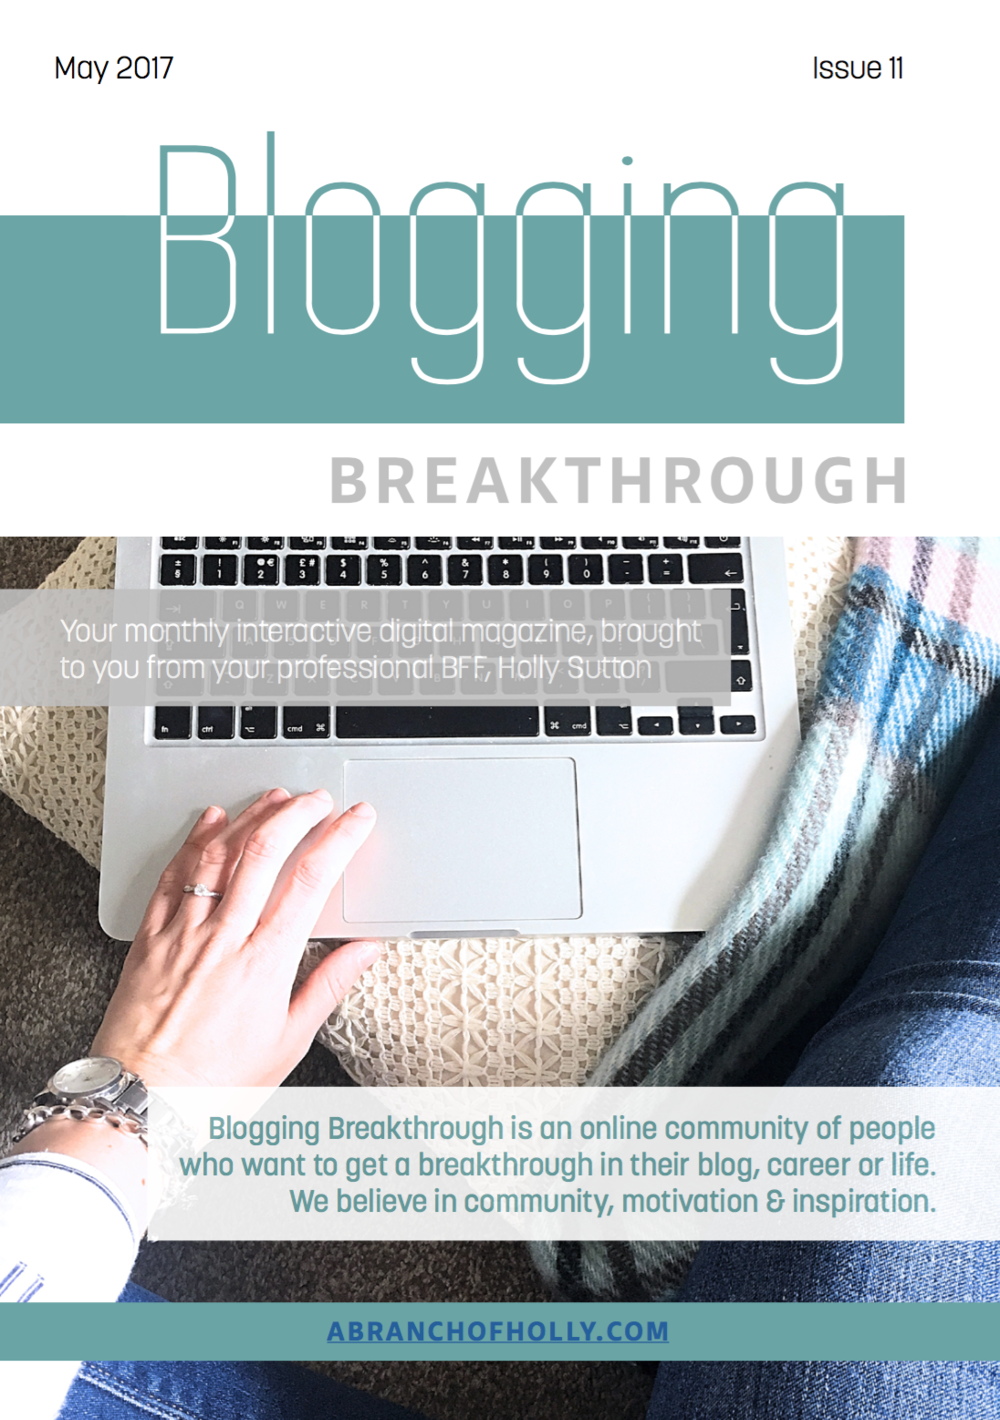 blogging breakthrough may 2017 issue 11